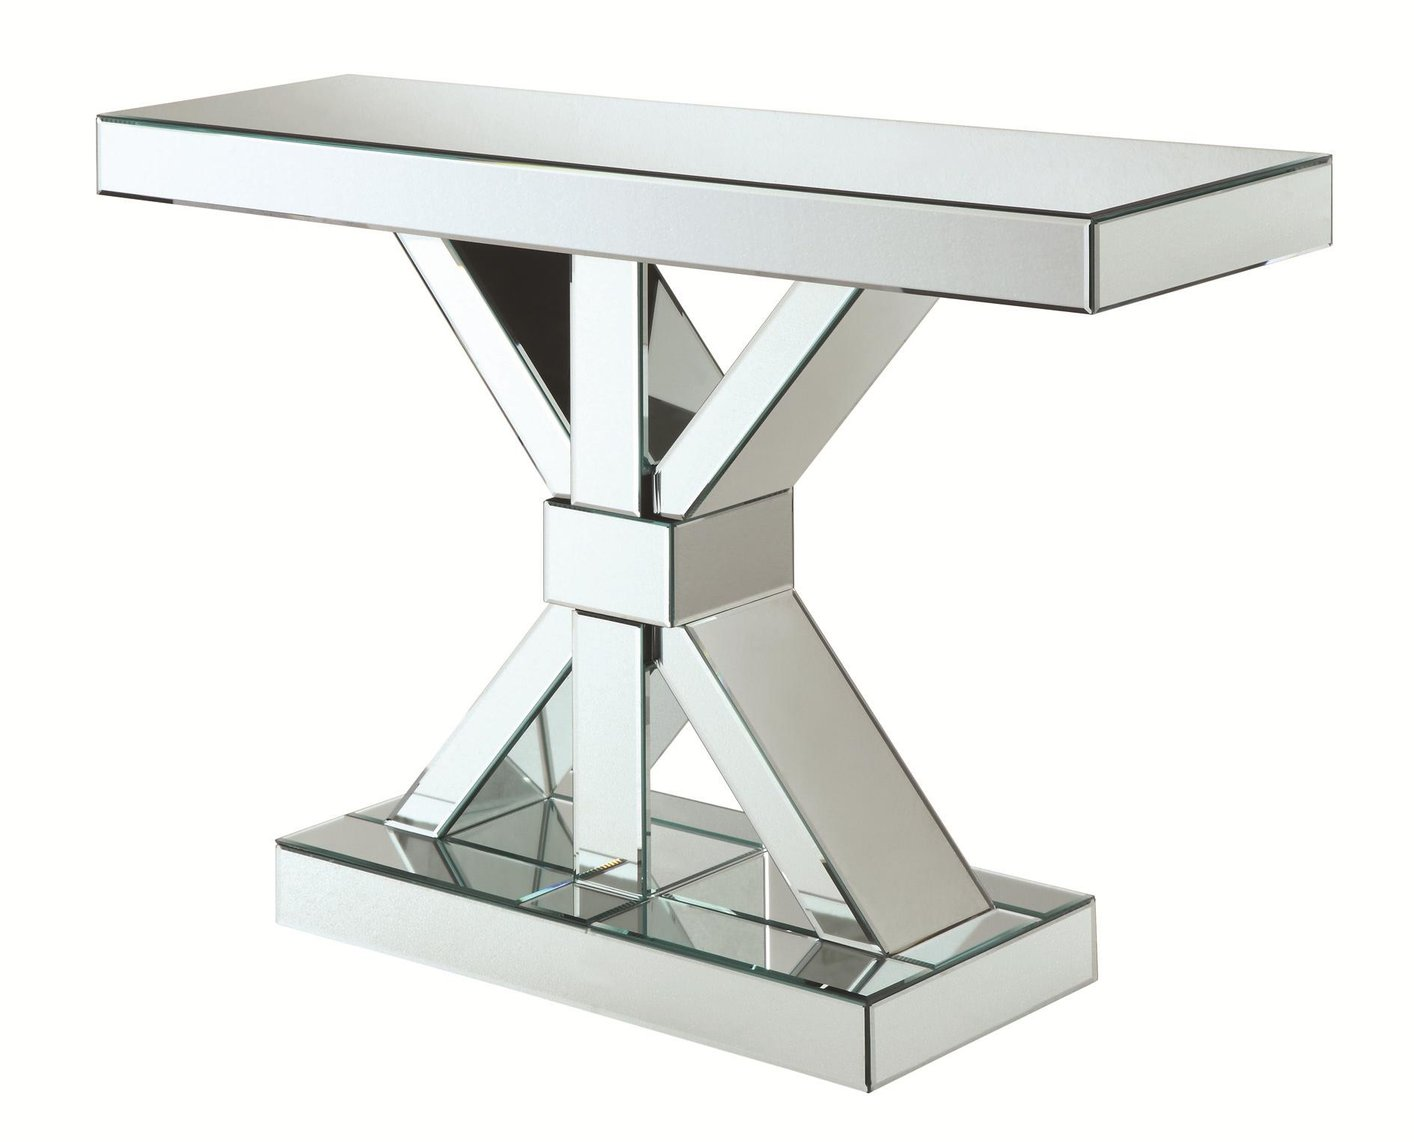 Coaster 950191 Silver Glass Console Table Steal A Sofa  : silver glass console table 63 from www.stealasofa.com size 1414 x 1142 jpeg 97kB